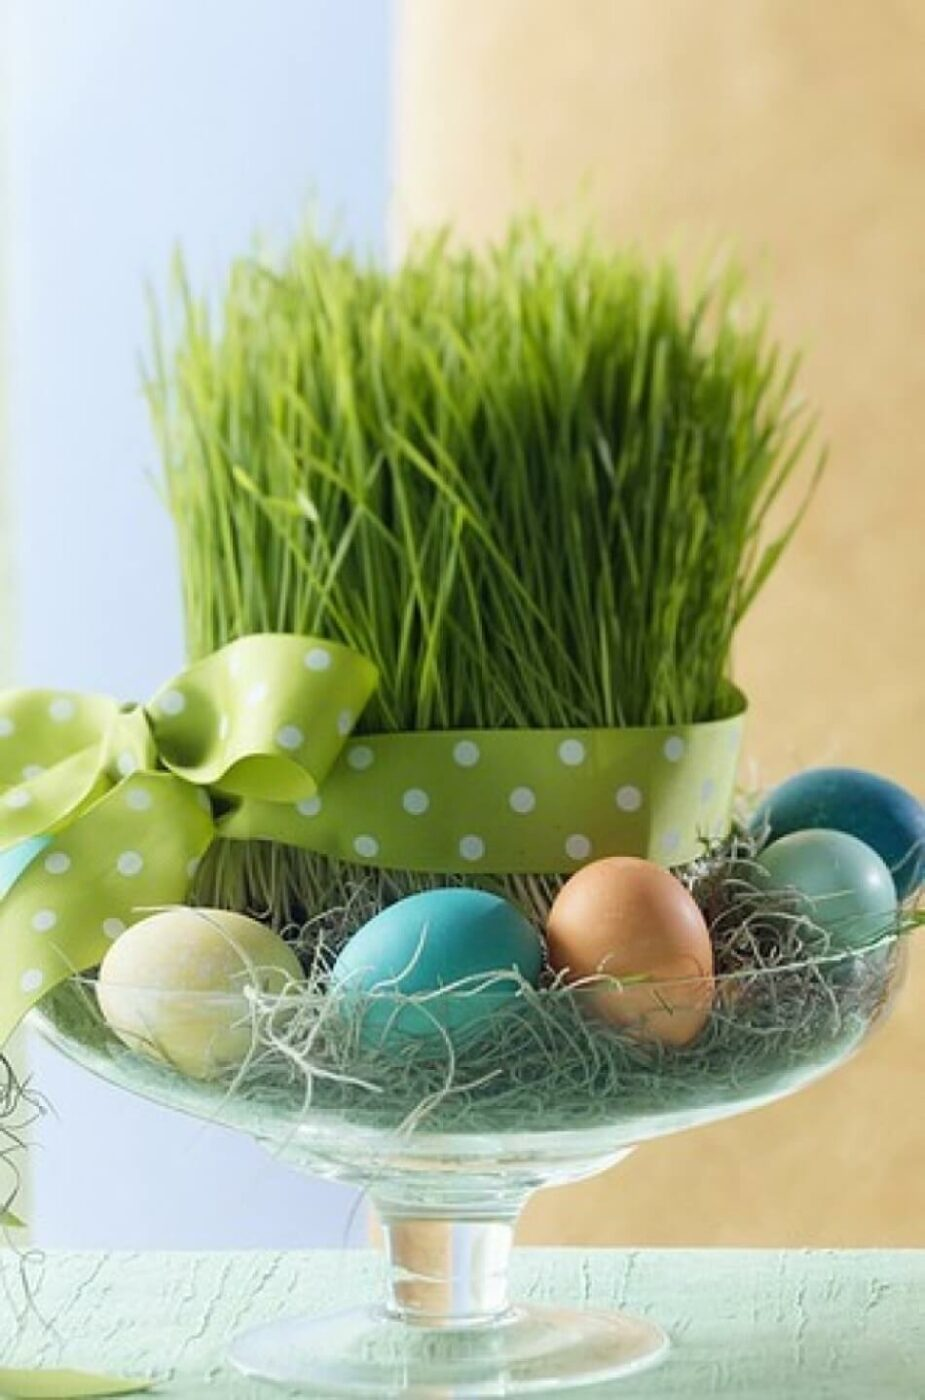 """""""The Grass Is Always Greener"""" Easter Egg Dish"""